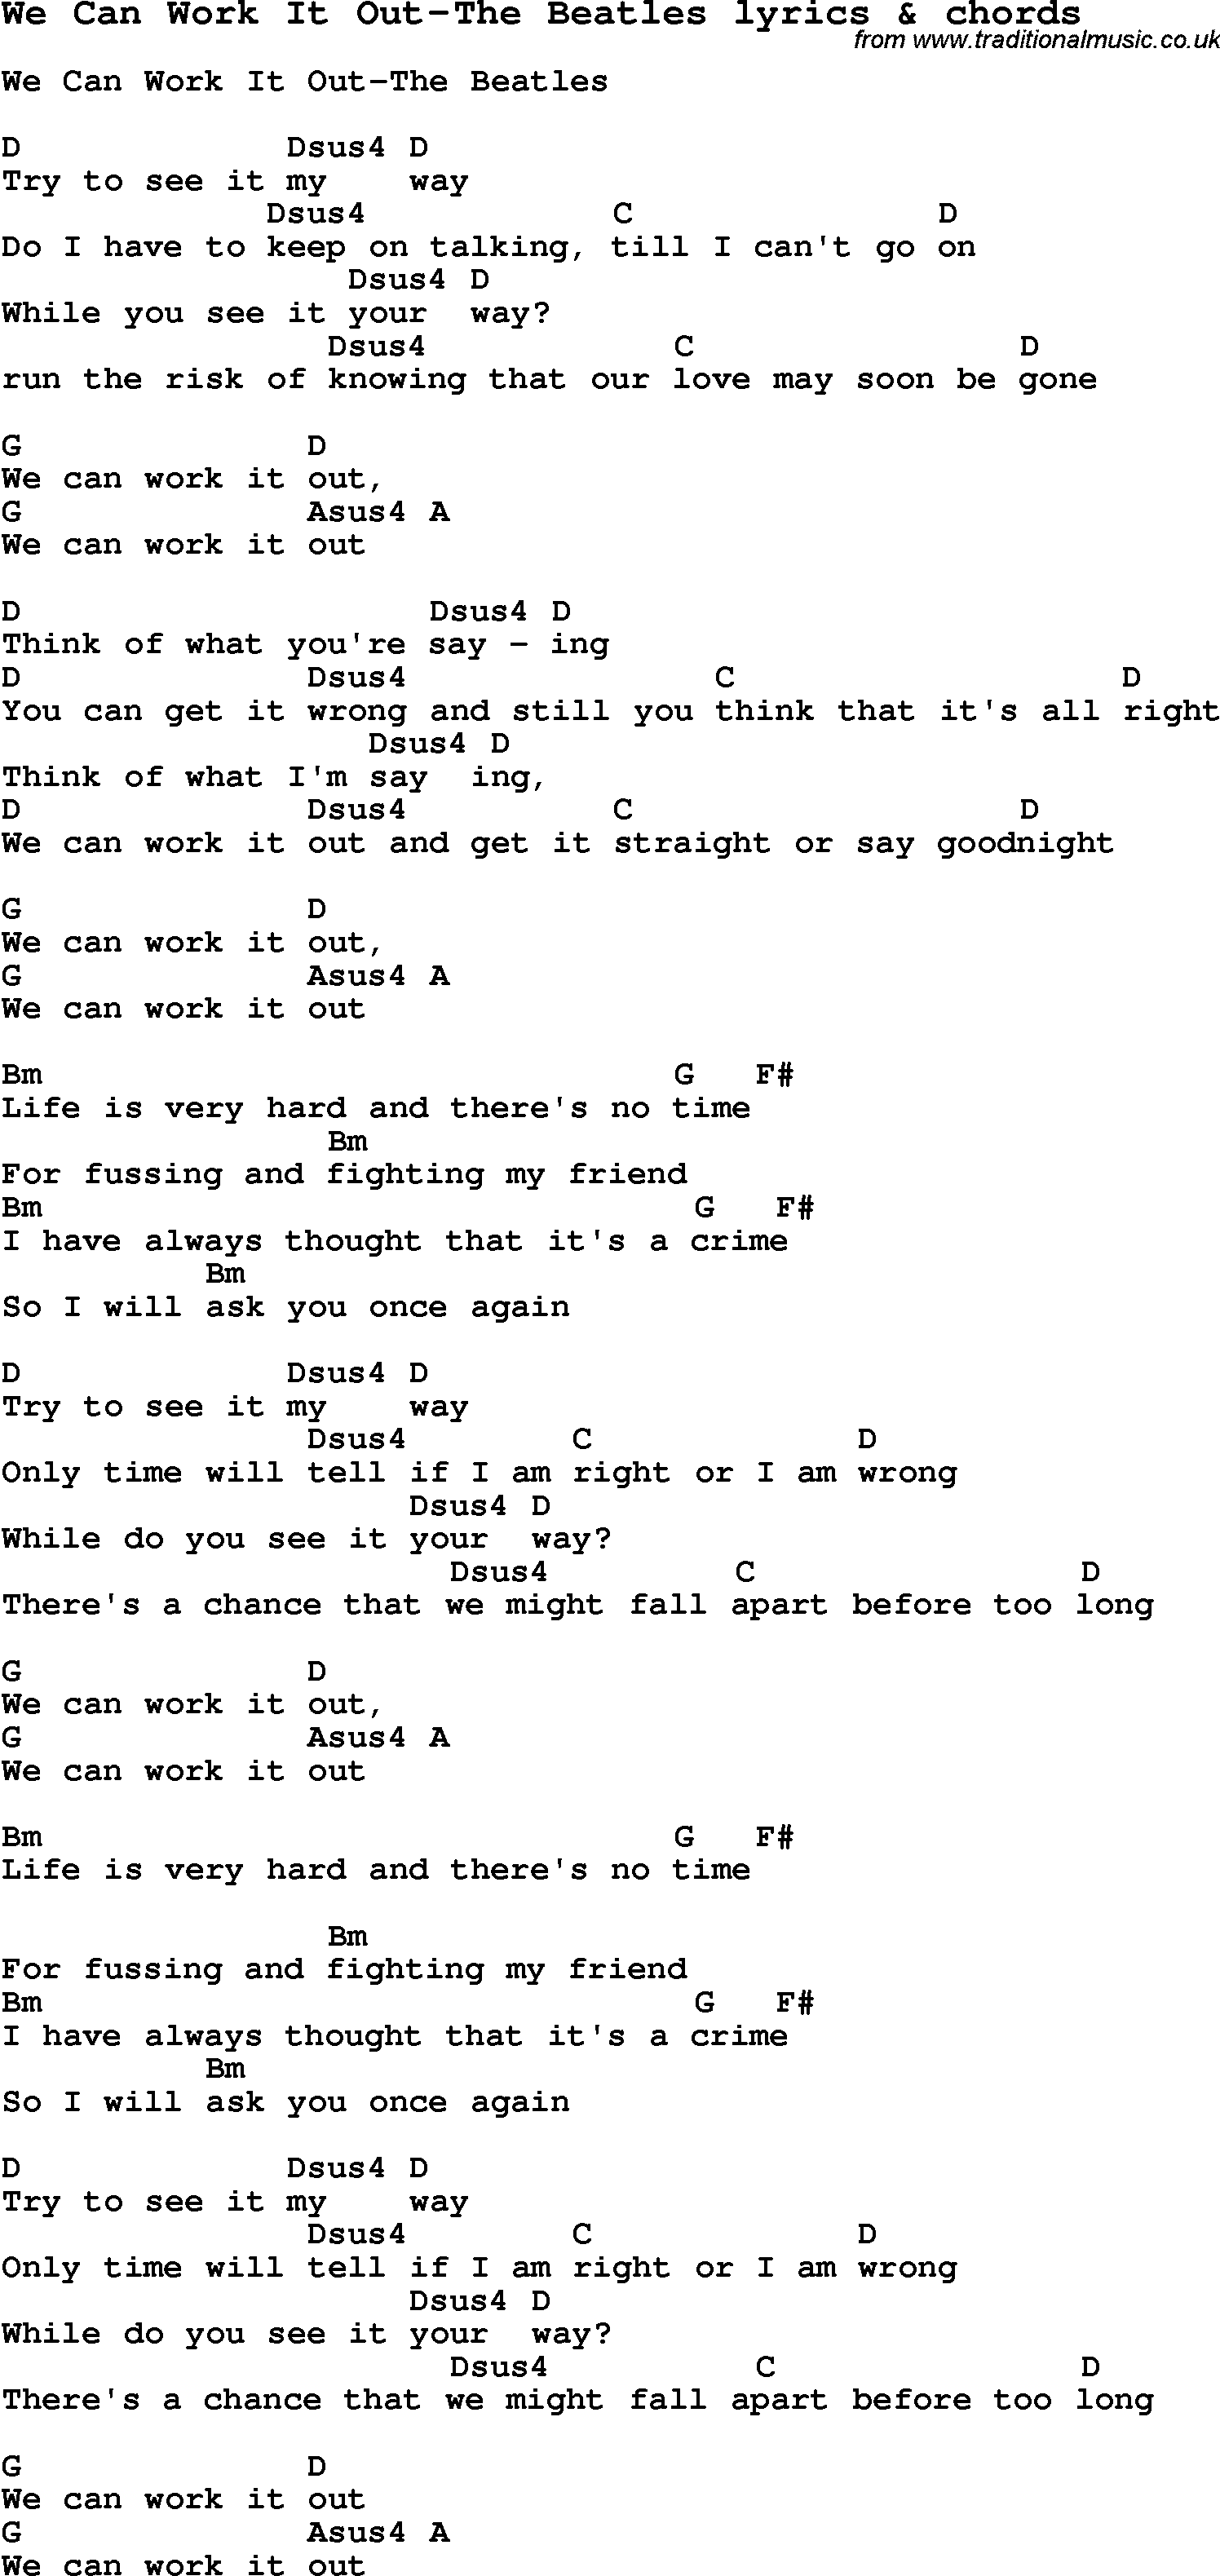 Love Song Lyrics for:We Can Work It Out-The Beatles with